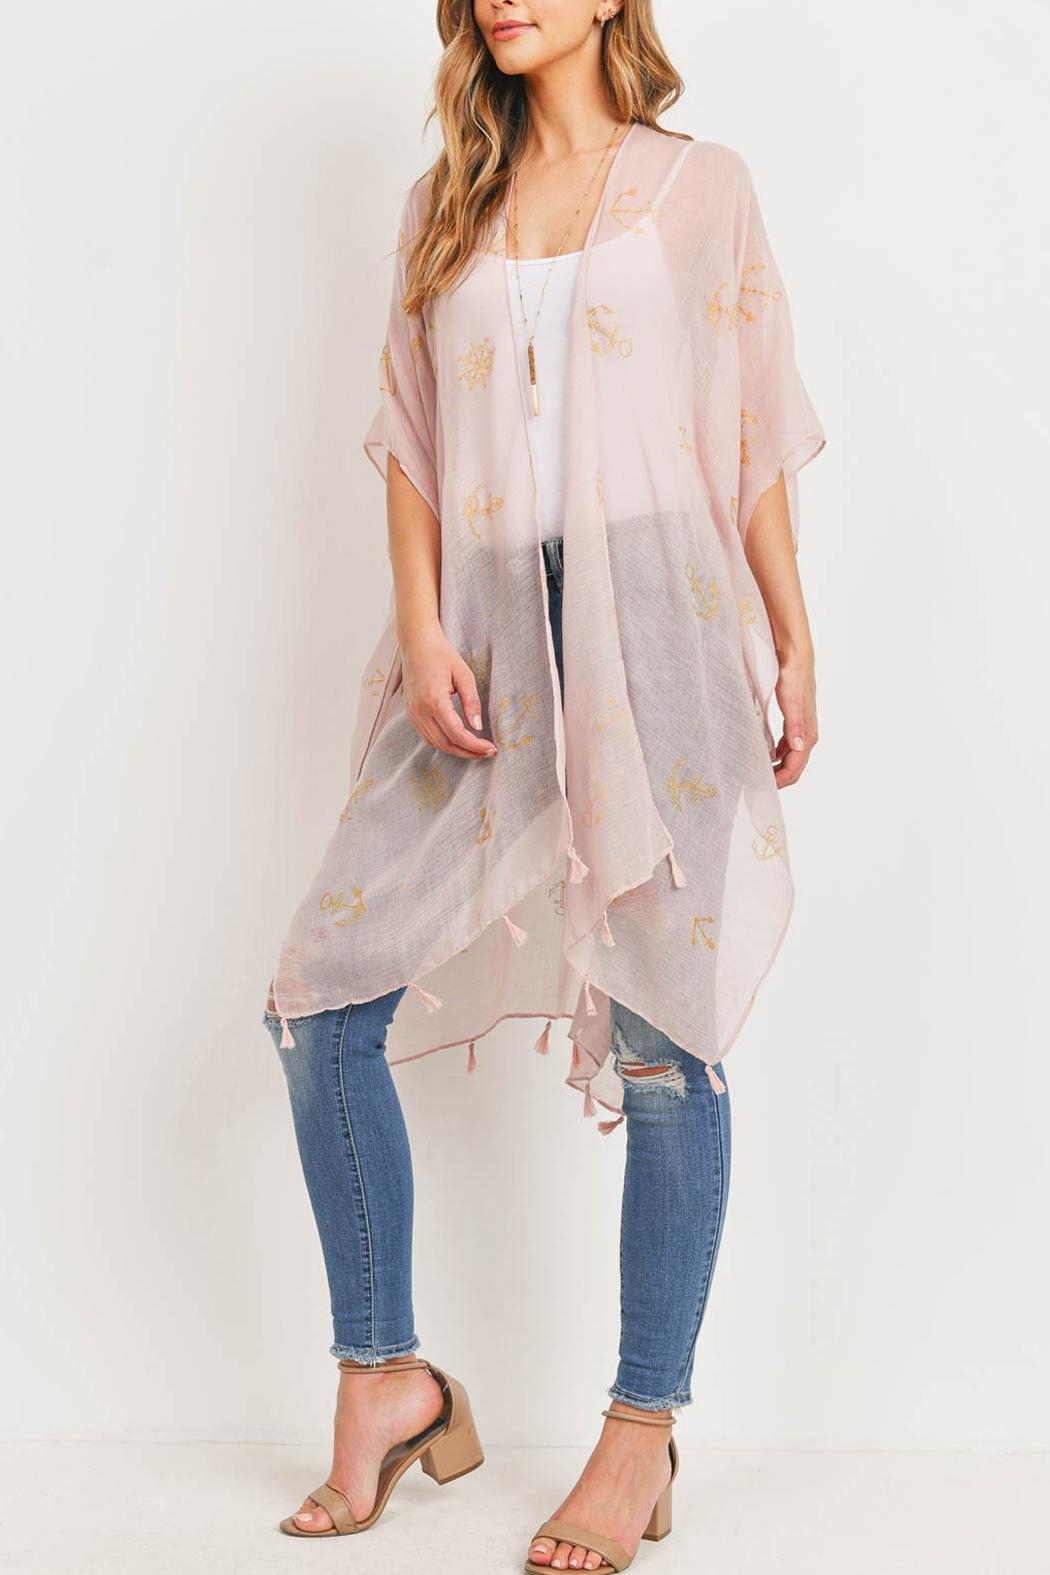 Riah Fashion Lightweight-Anchor-&-Leaf-Beach-Cover-Ups - Back Cropped Image